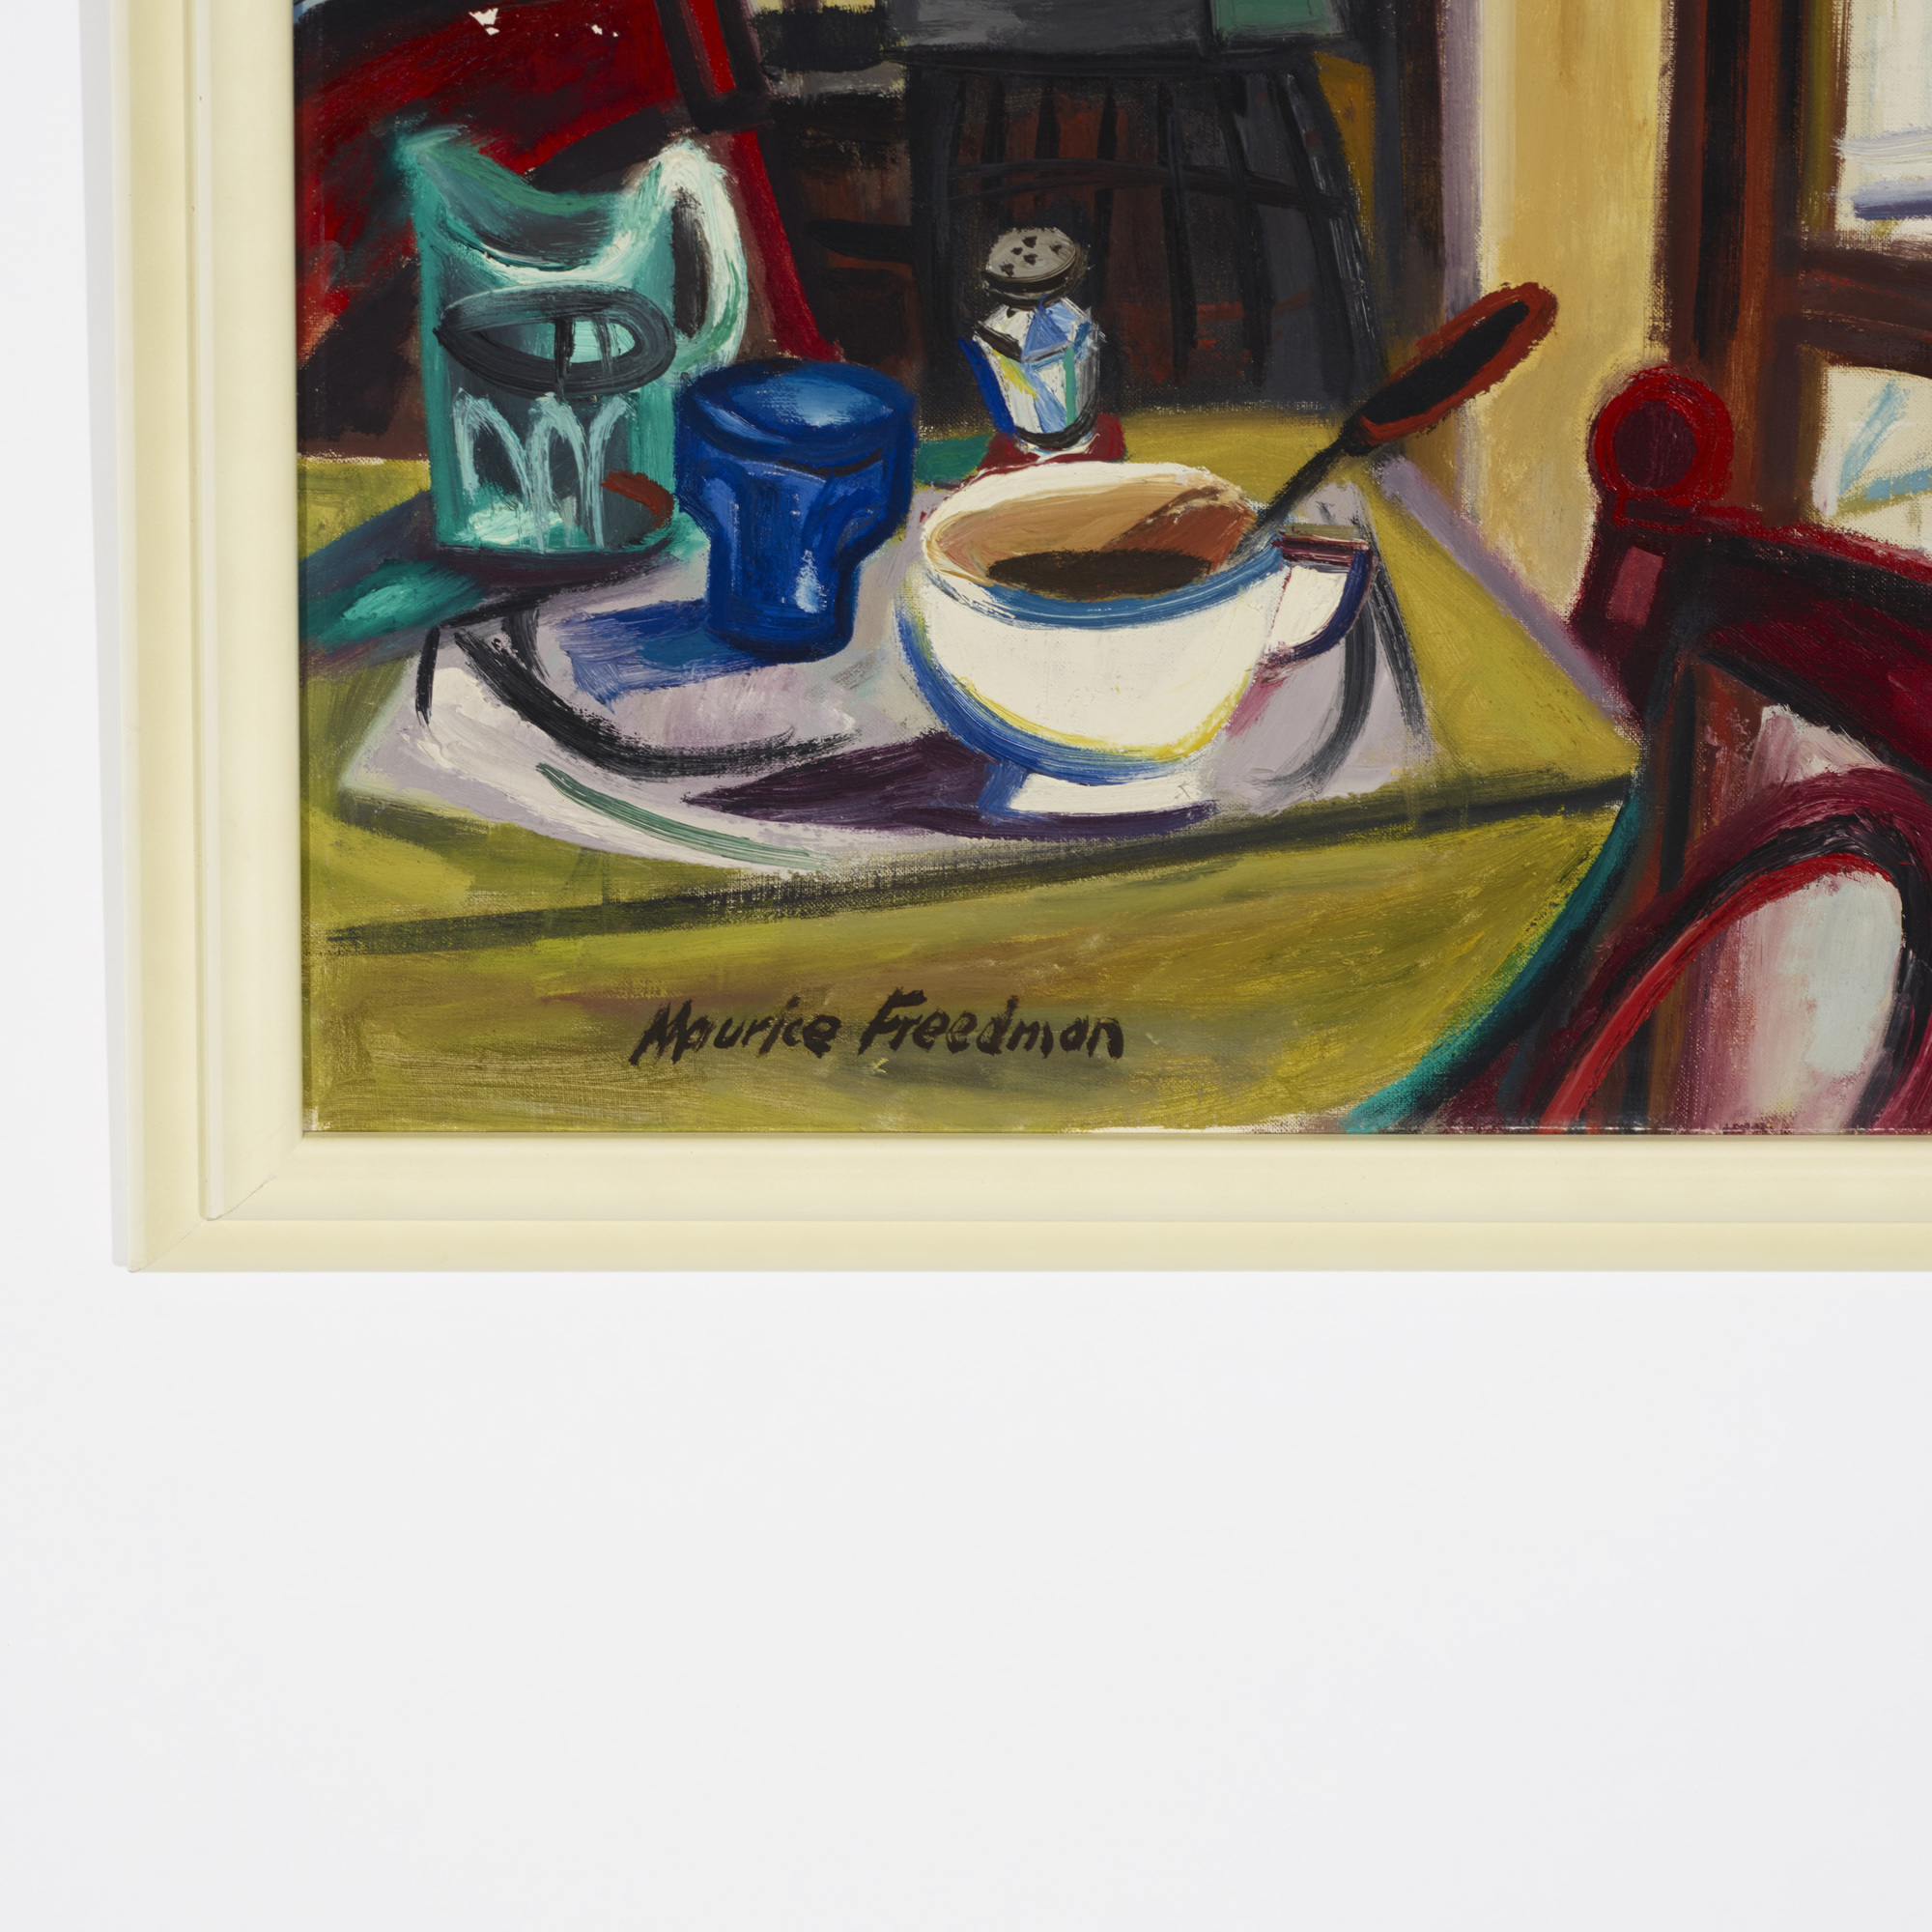 206: Maurice Freedman / Untitled (Interior View) (2 of 2)